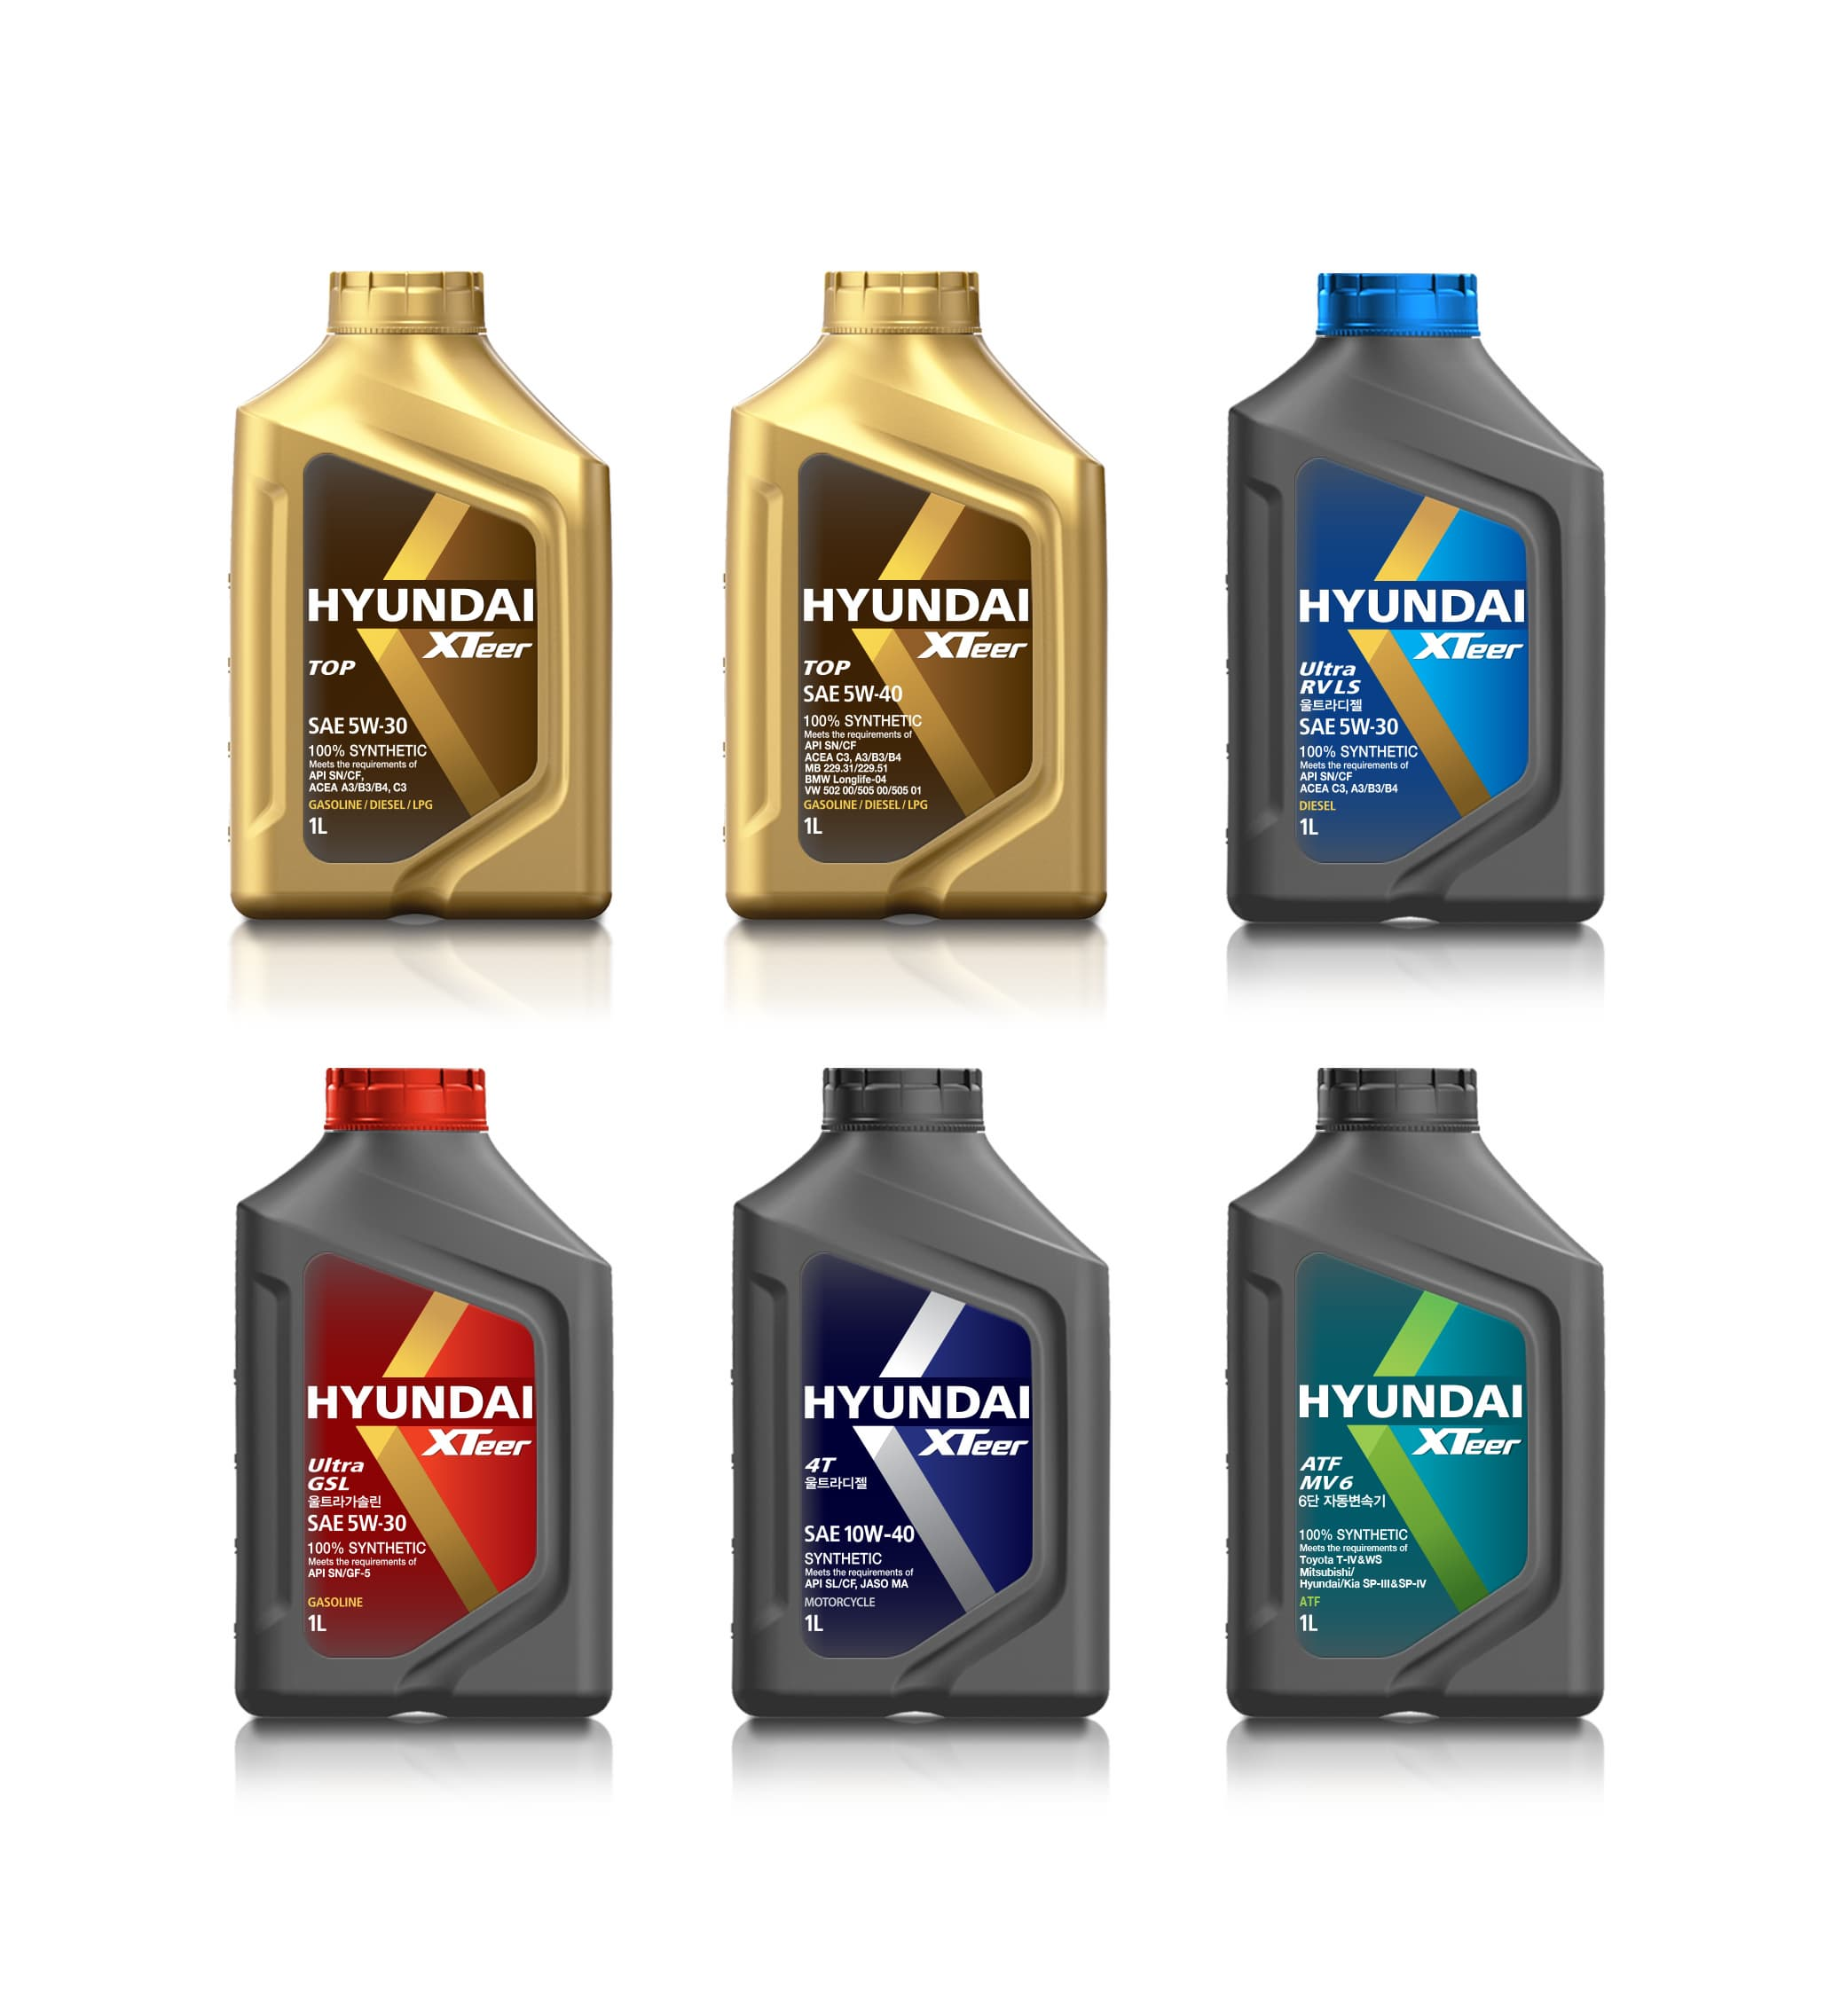 Hyundai Xteer Lubricants Engine Oil From Hyundai Oilbank